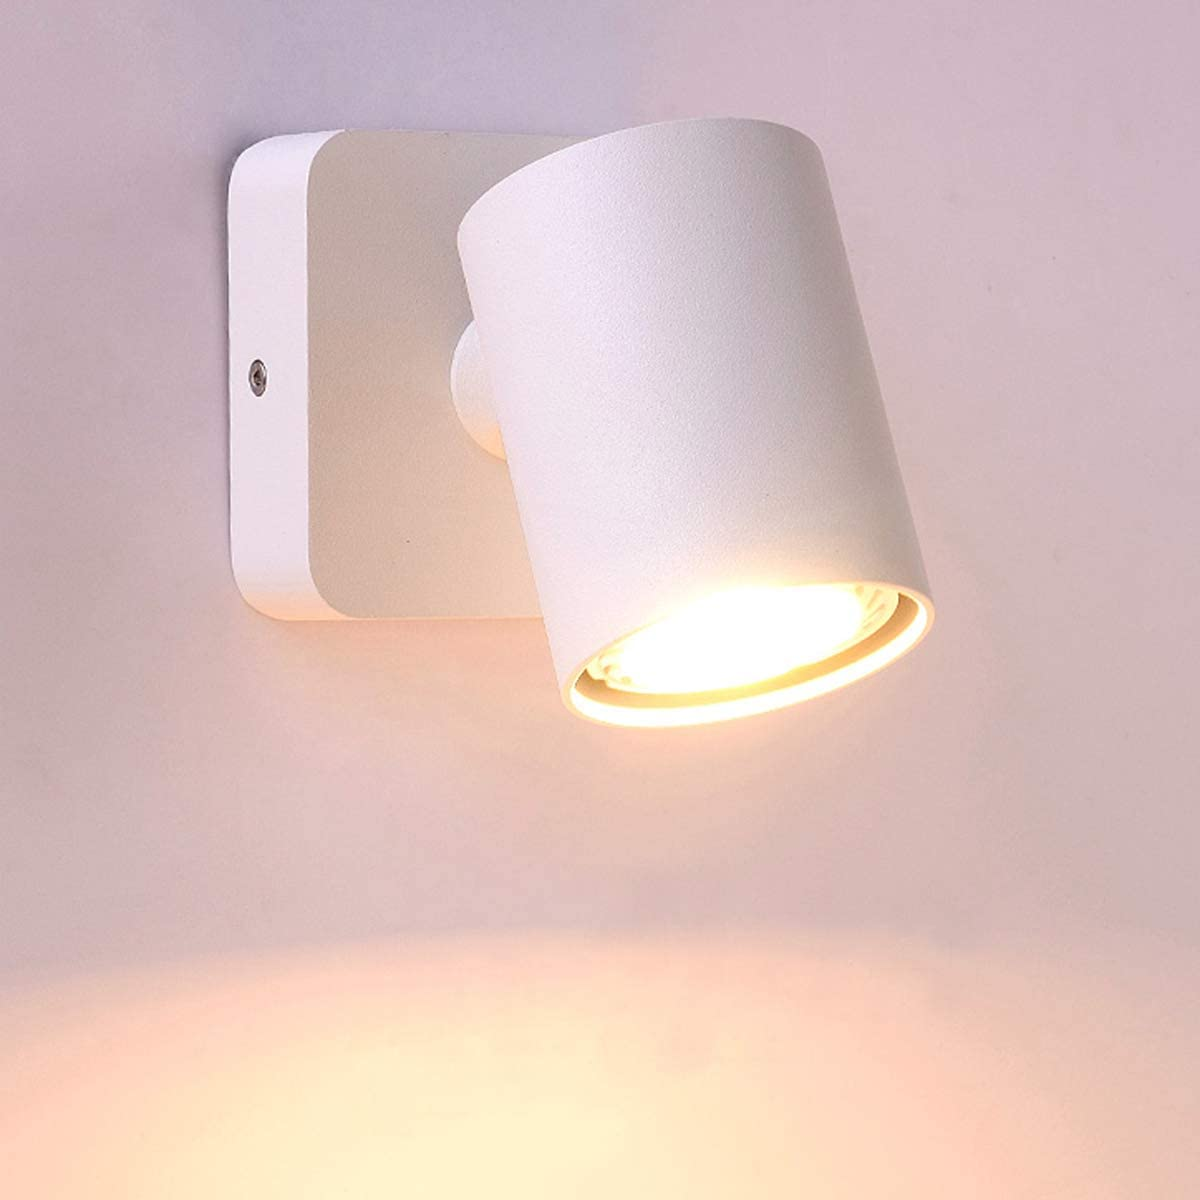 Luzden Bedside Reading Wall Lamp Fixture Mounted LED Indoor Ceiling Spotlight Adjustable Wall Sconce Rotatable White GU10